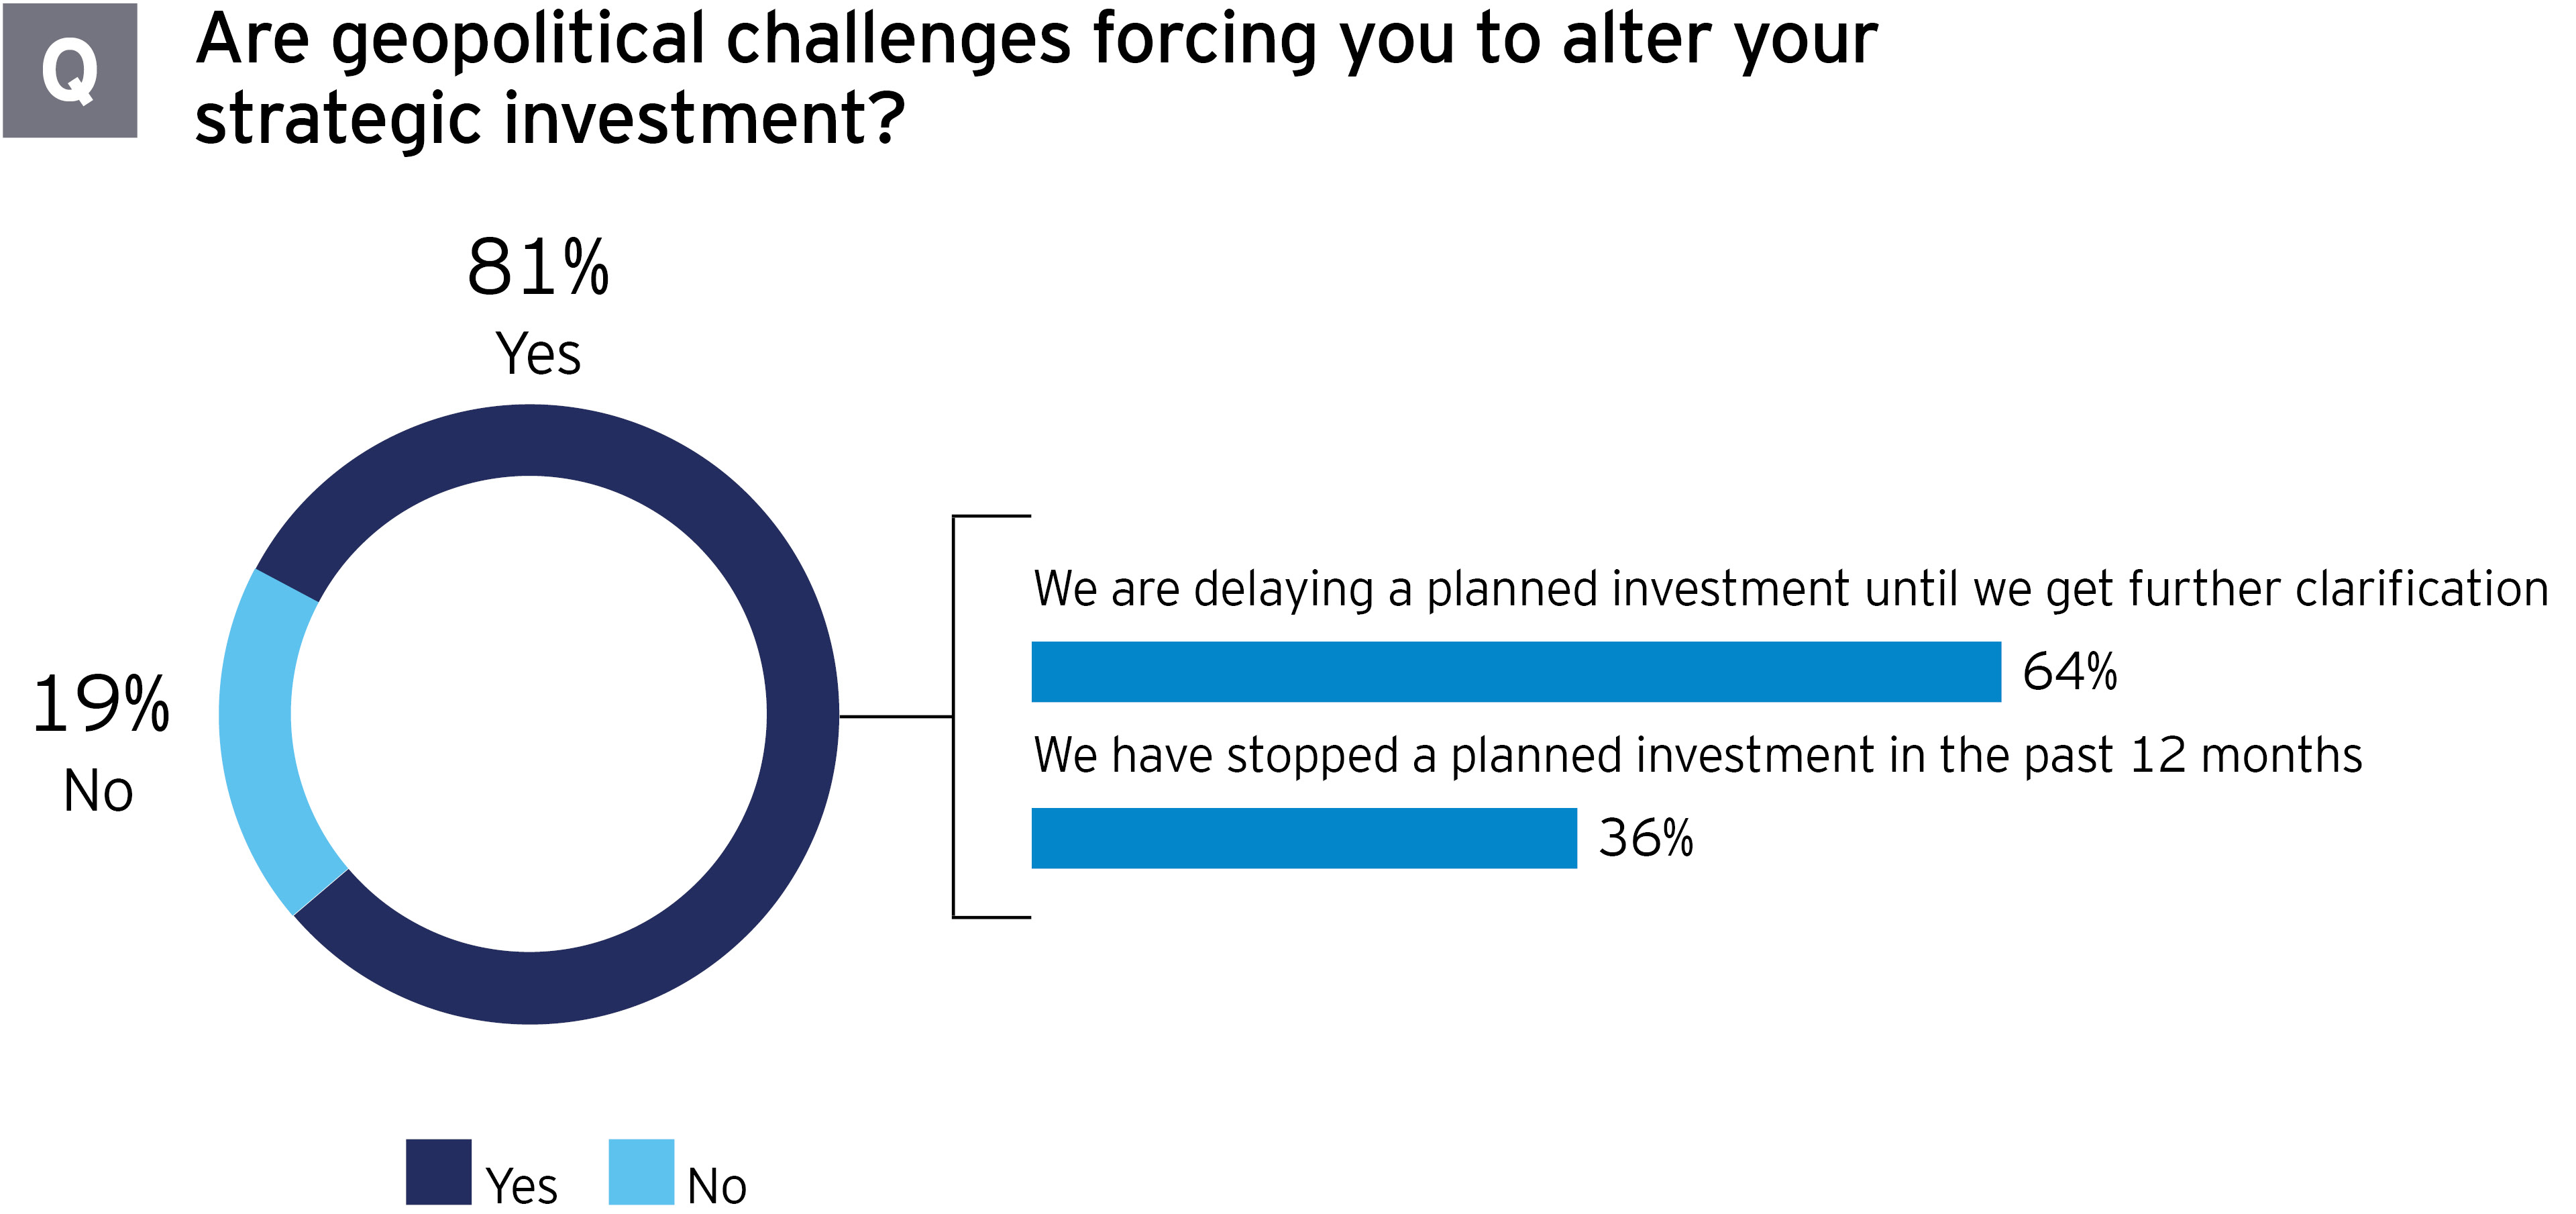 Government and infrastructure geopolitical challenges altering strategic investment